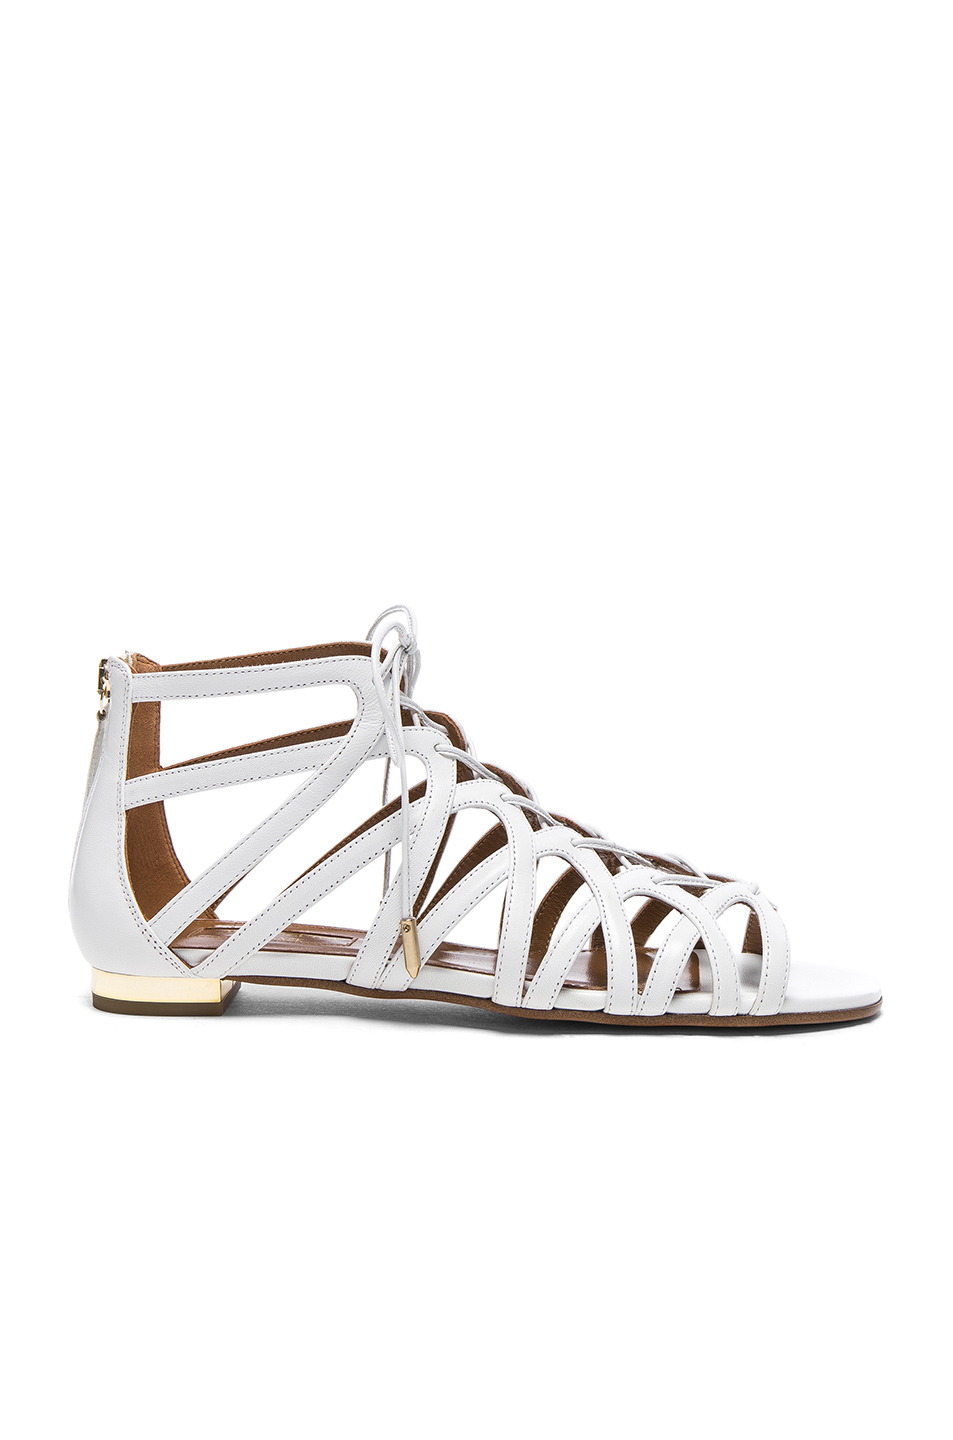 Photo of Aquazzura Leather Ivy Sandal Flats in White online sales